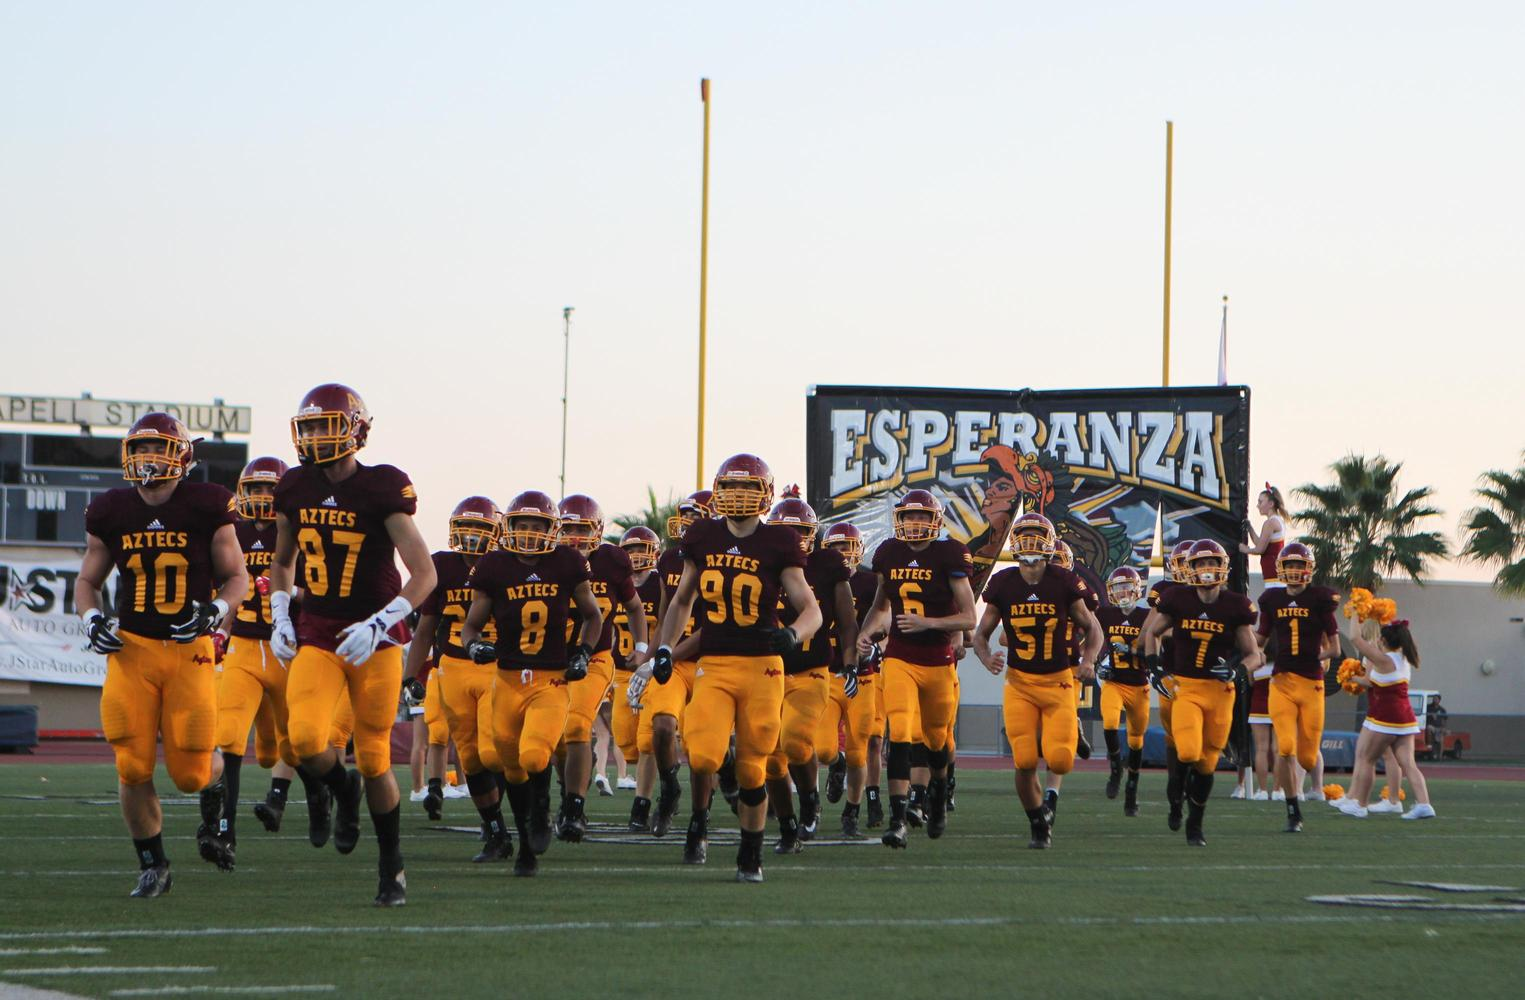 Esperanza's football team running on the field.